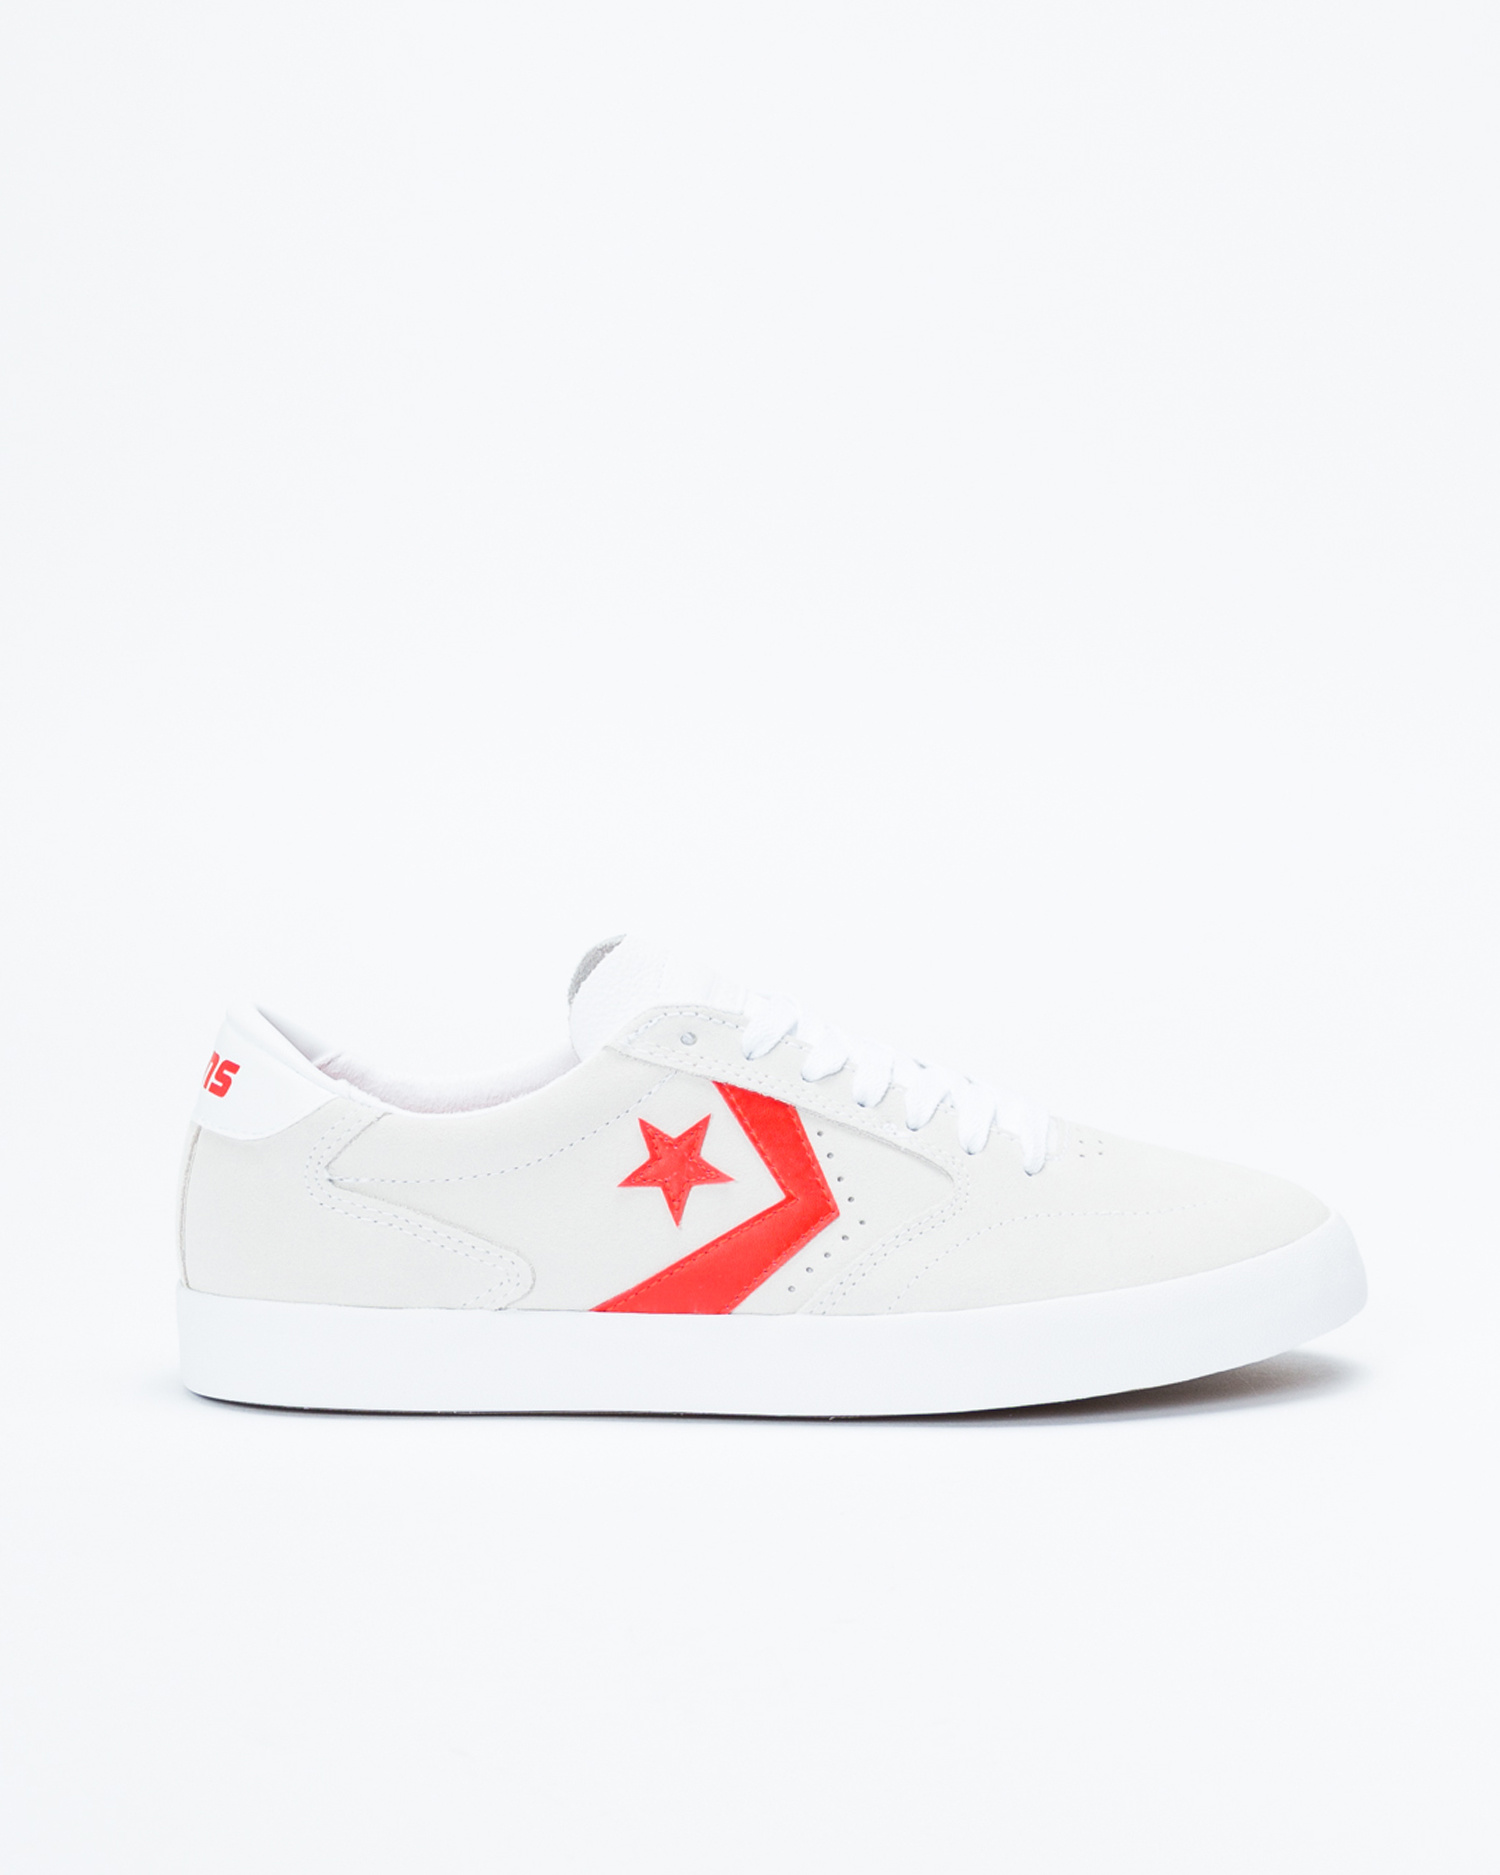 Converse Checkpoint Pro OX White/Habanero/Red